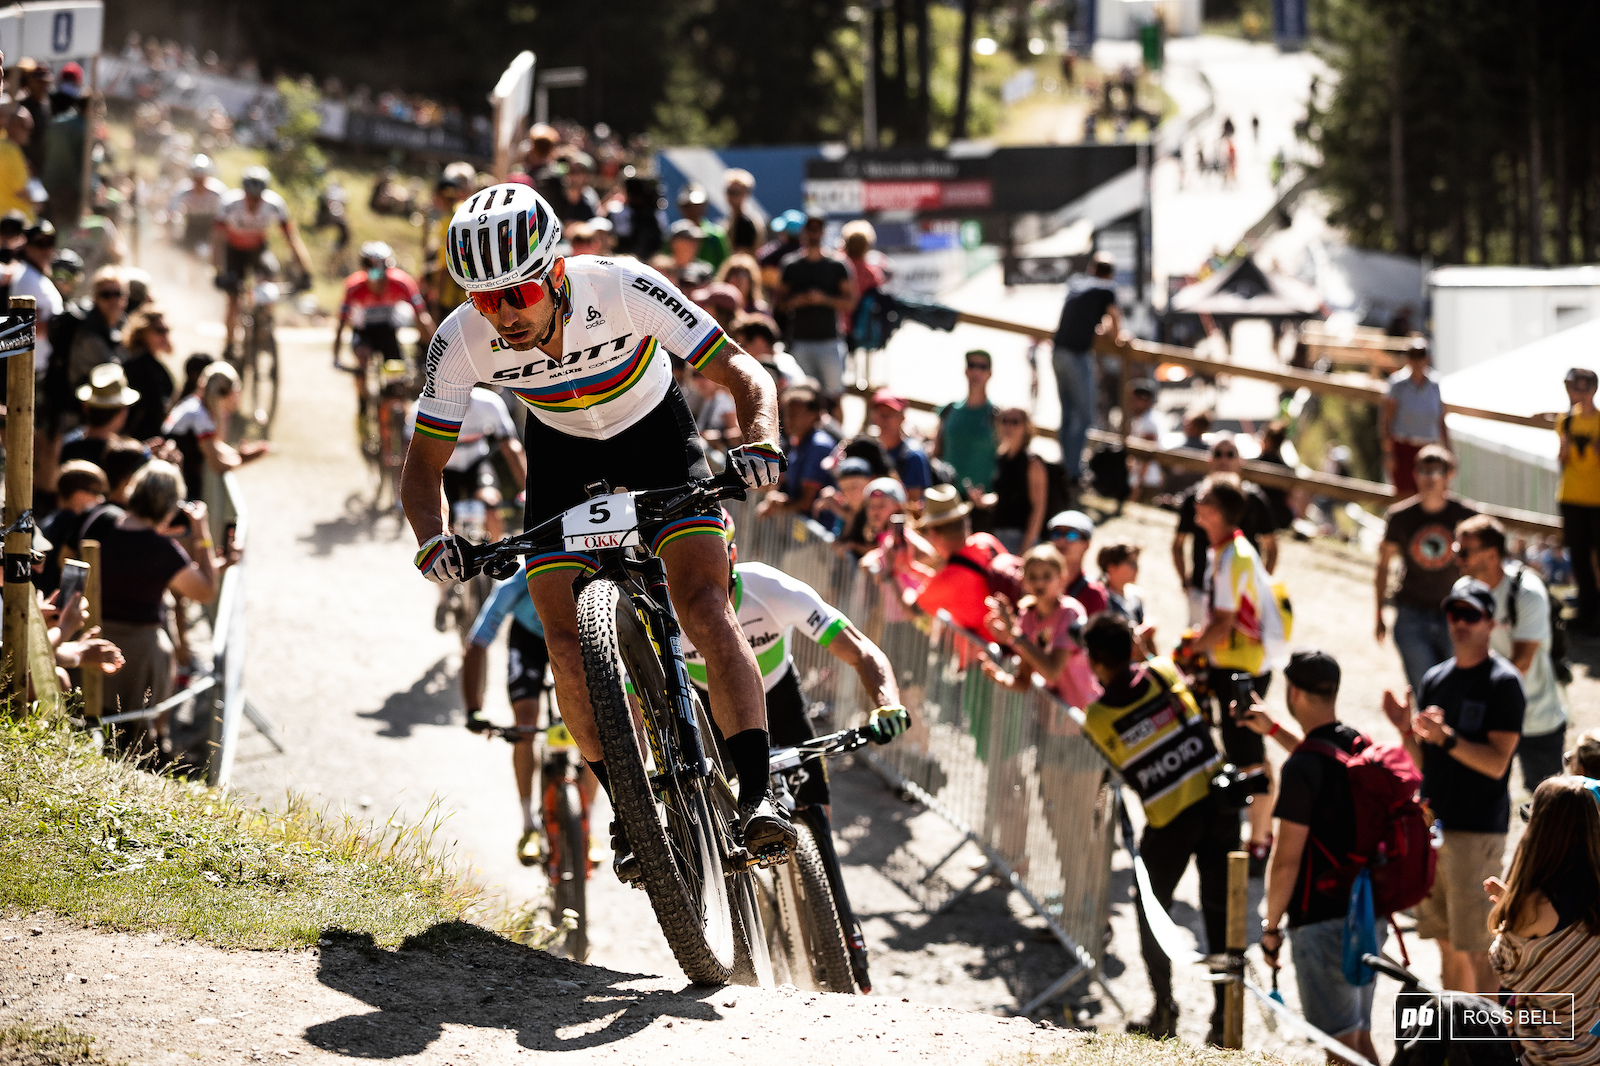 Nino Schurter takes control at the front of the pack.